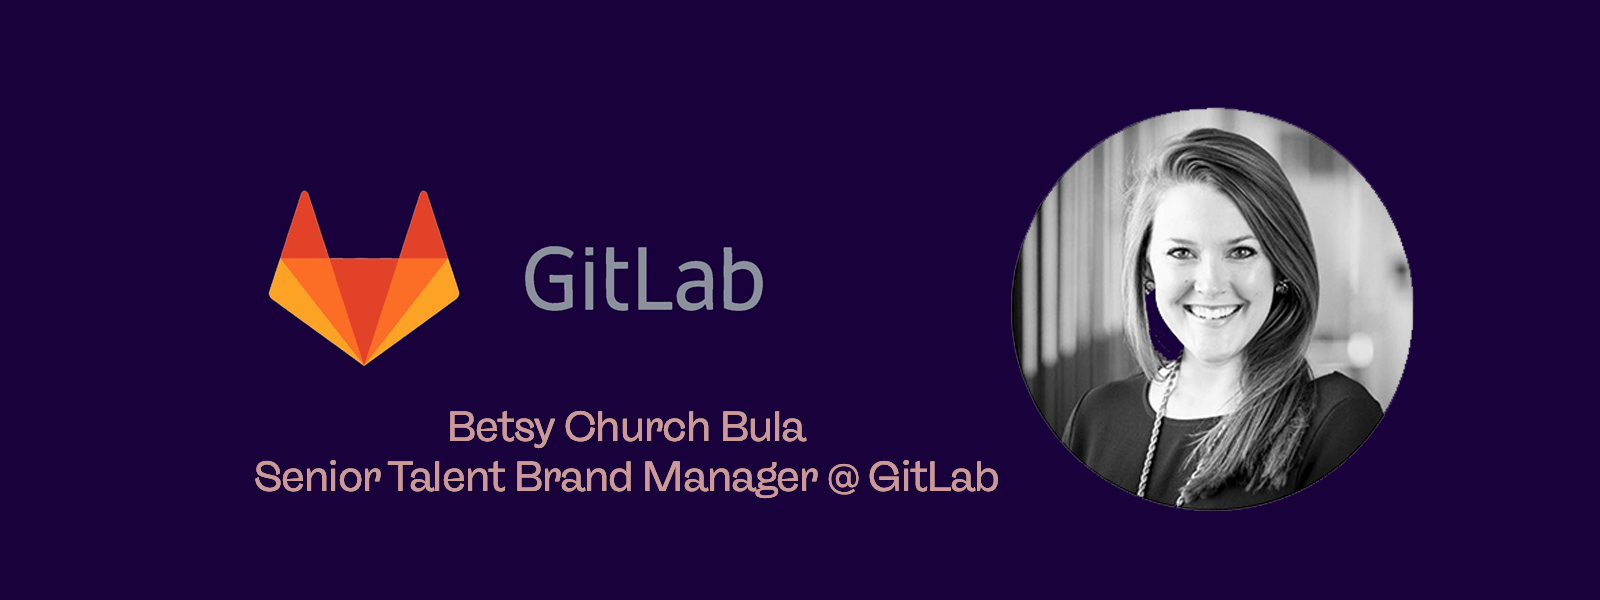 Betsy Church Bula Senior Talent Brand Manager at Gitlab and a black and white photo of a woman with long hair